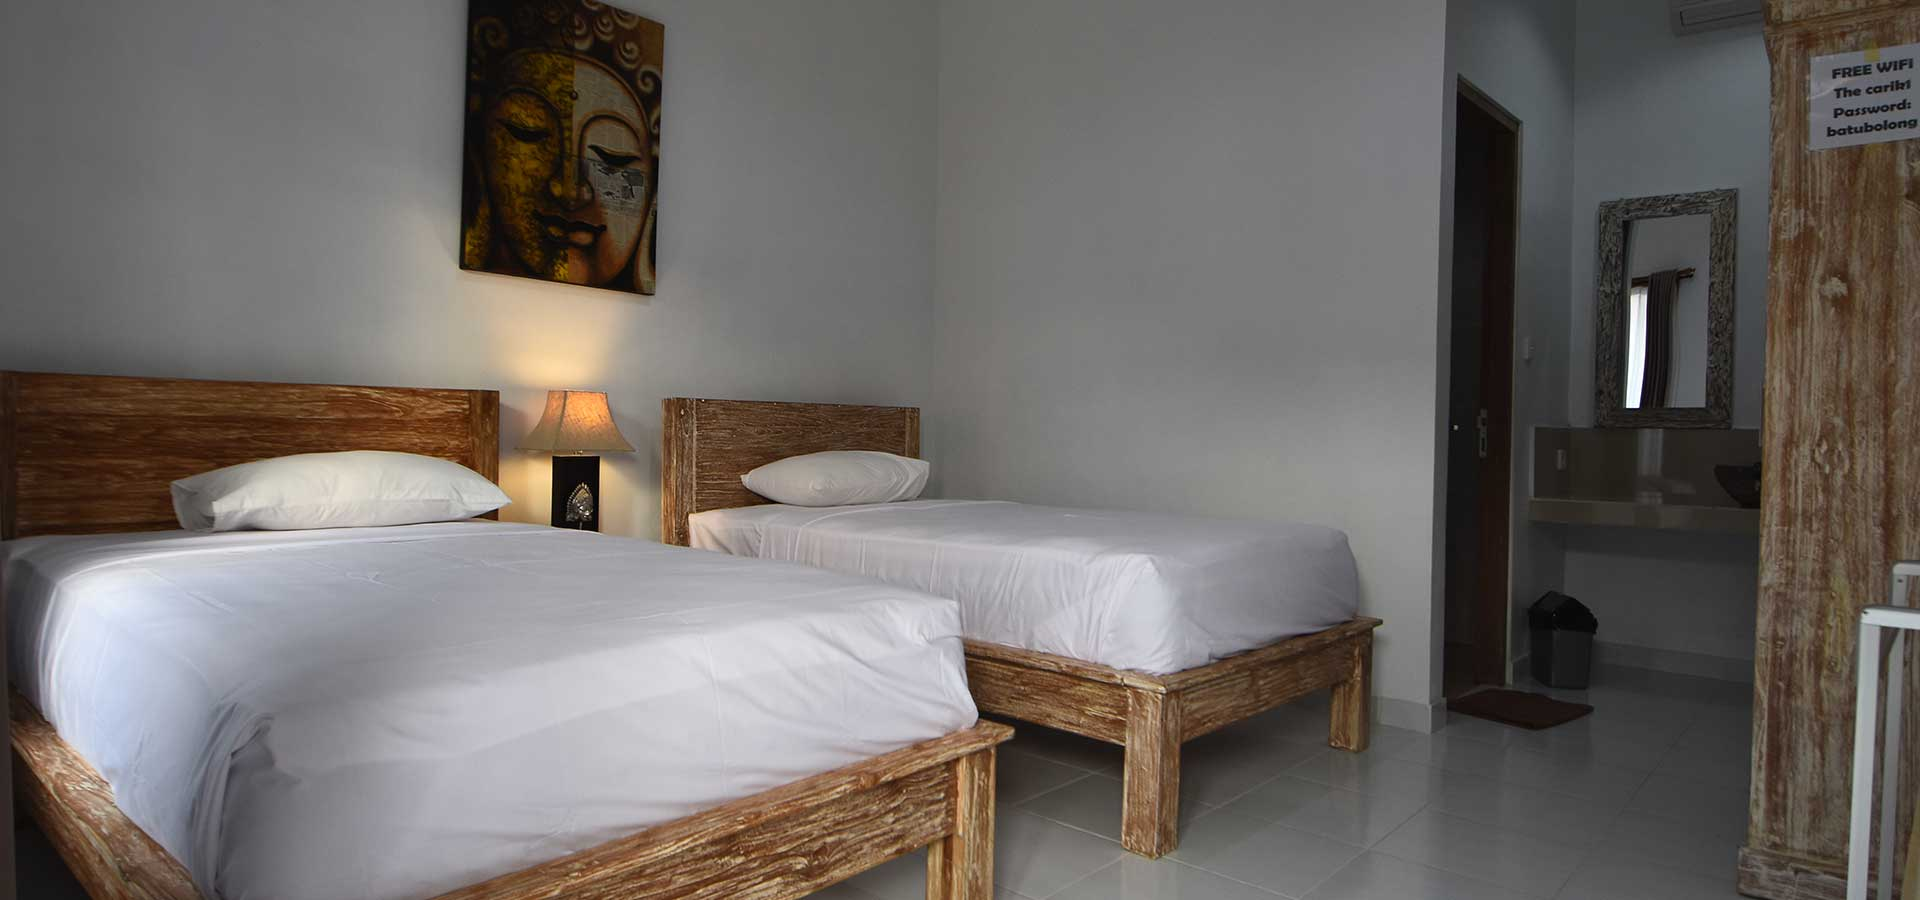 accommodation-Canggu-7